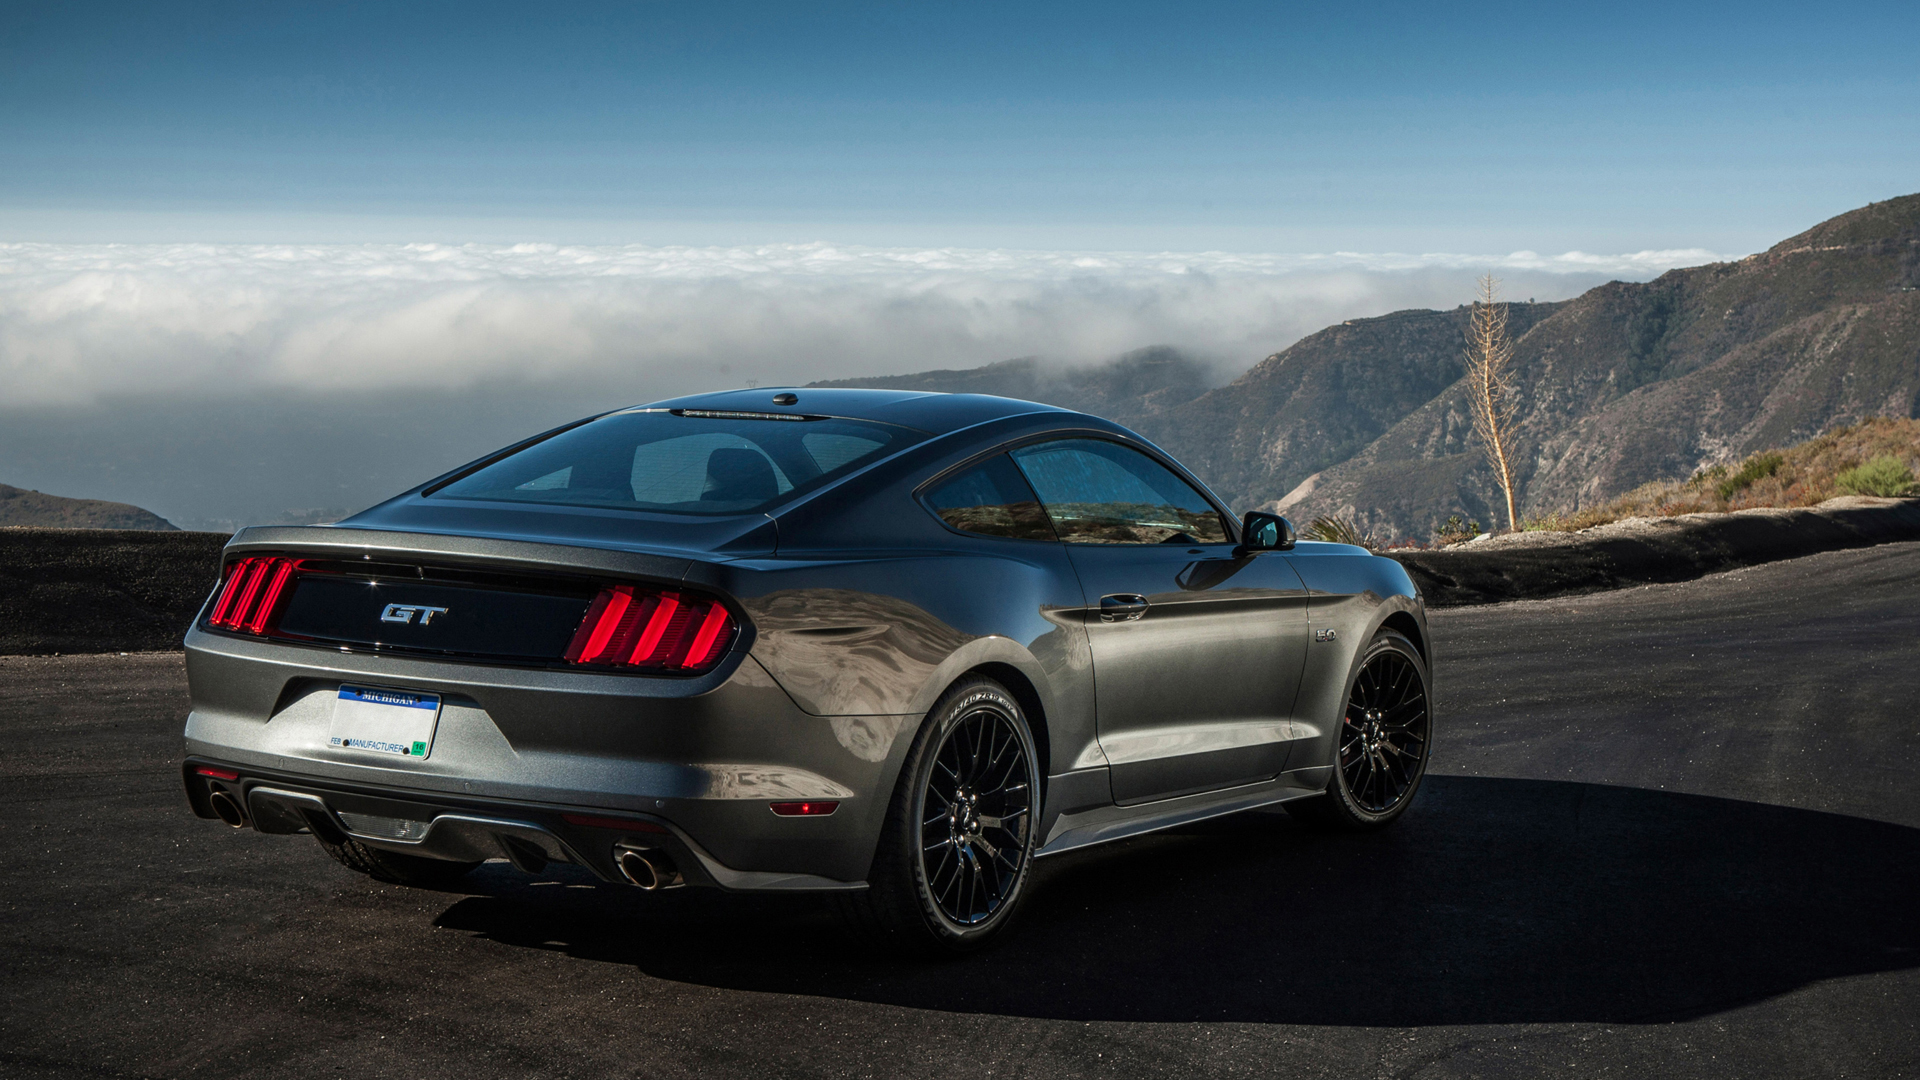 ford-mustang-gt-2015-wallpapers-hd-21.jpg